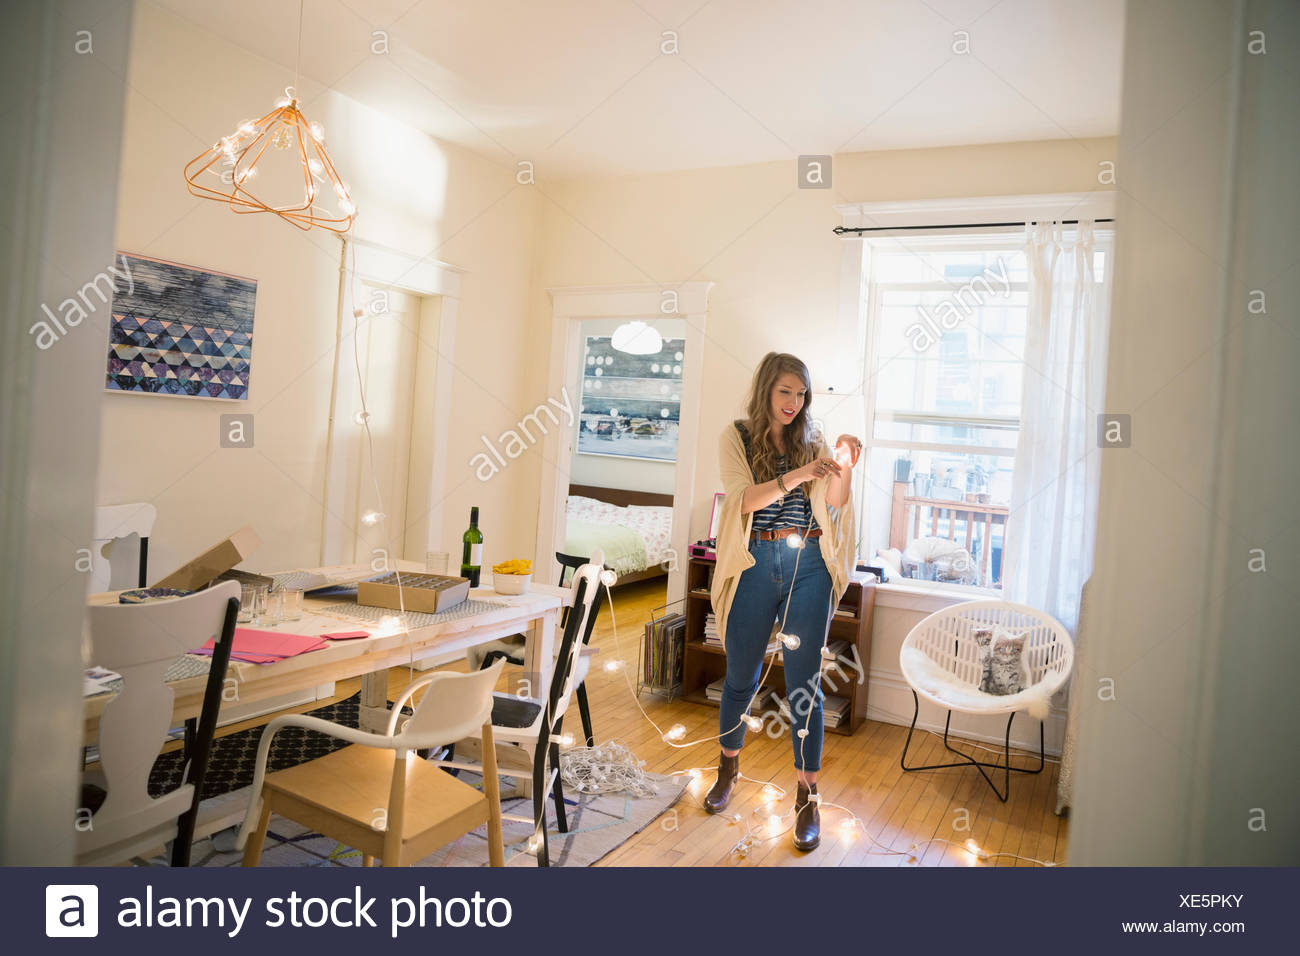 Woman hanging string lights in dining room Stock Photo